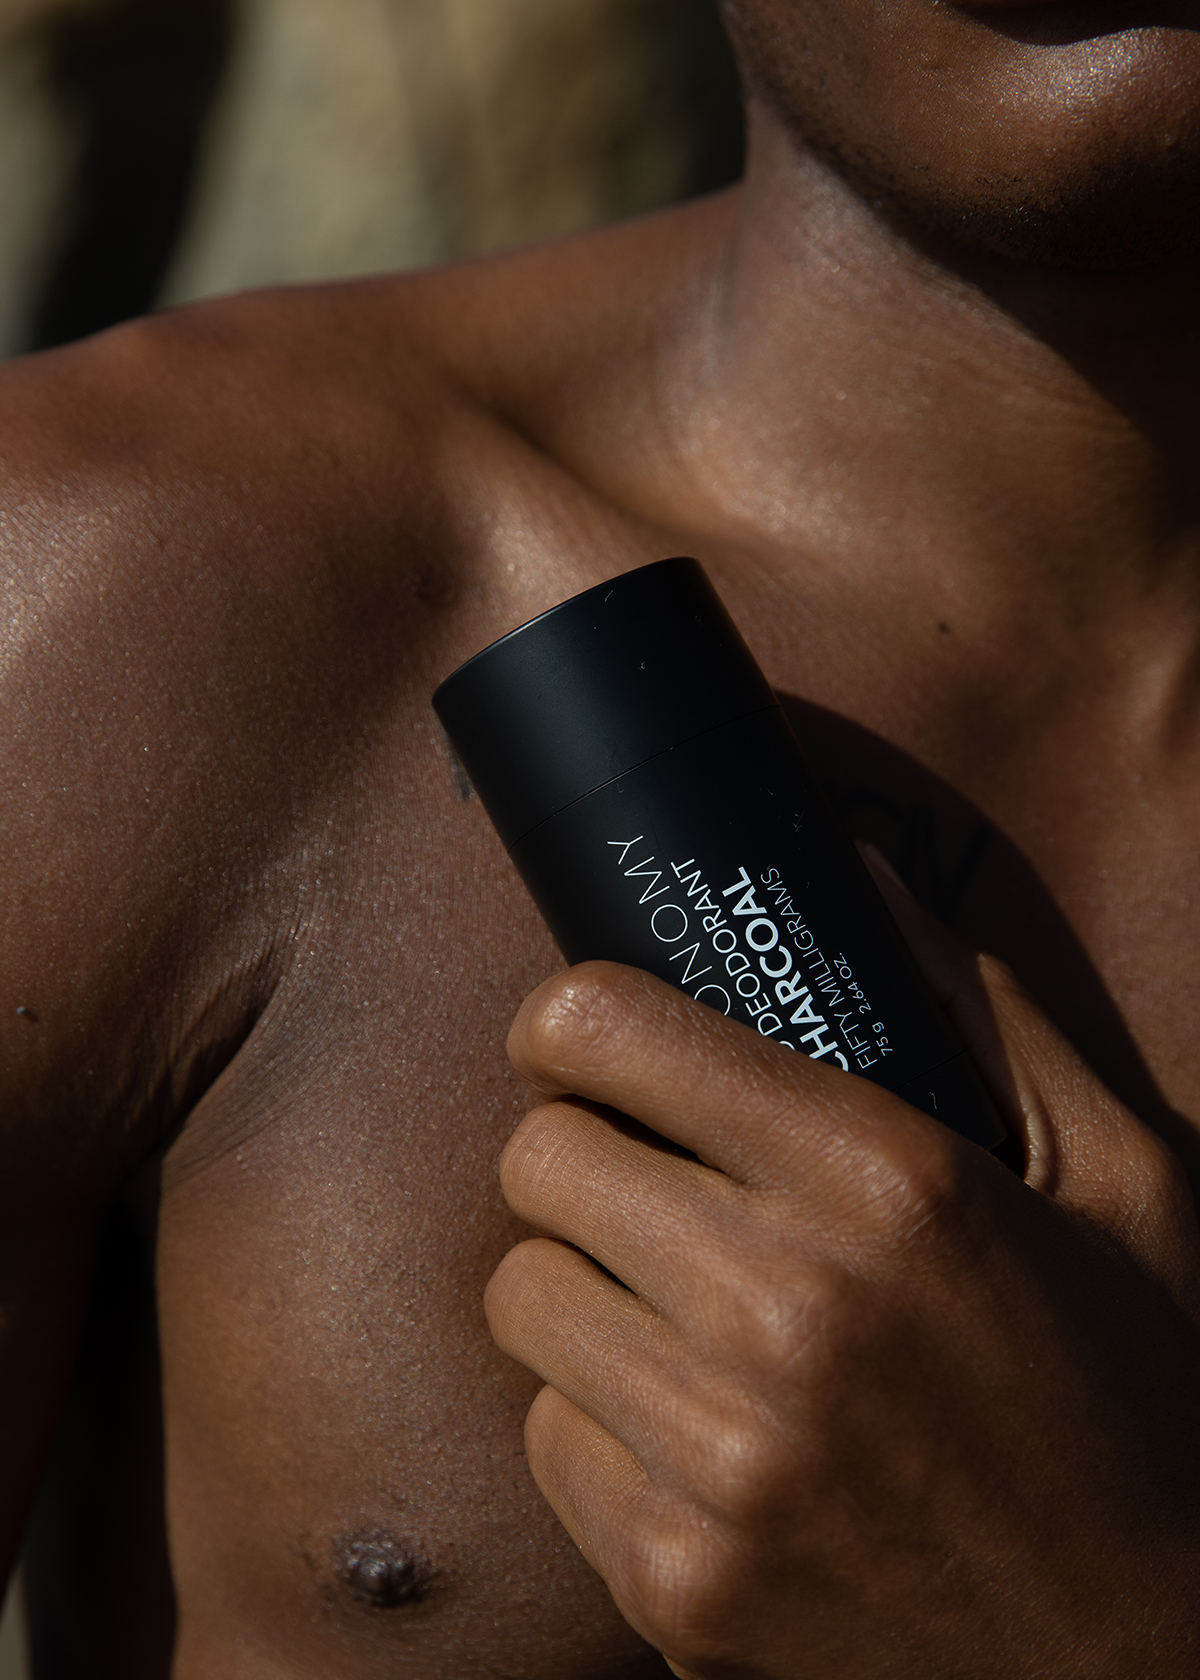 AN ALL-NATURAL, CBD-INFUSED, PARABEN-FREE, ALUMINUM-FREE DEODORANT THAT WORKS